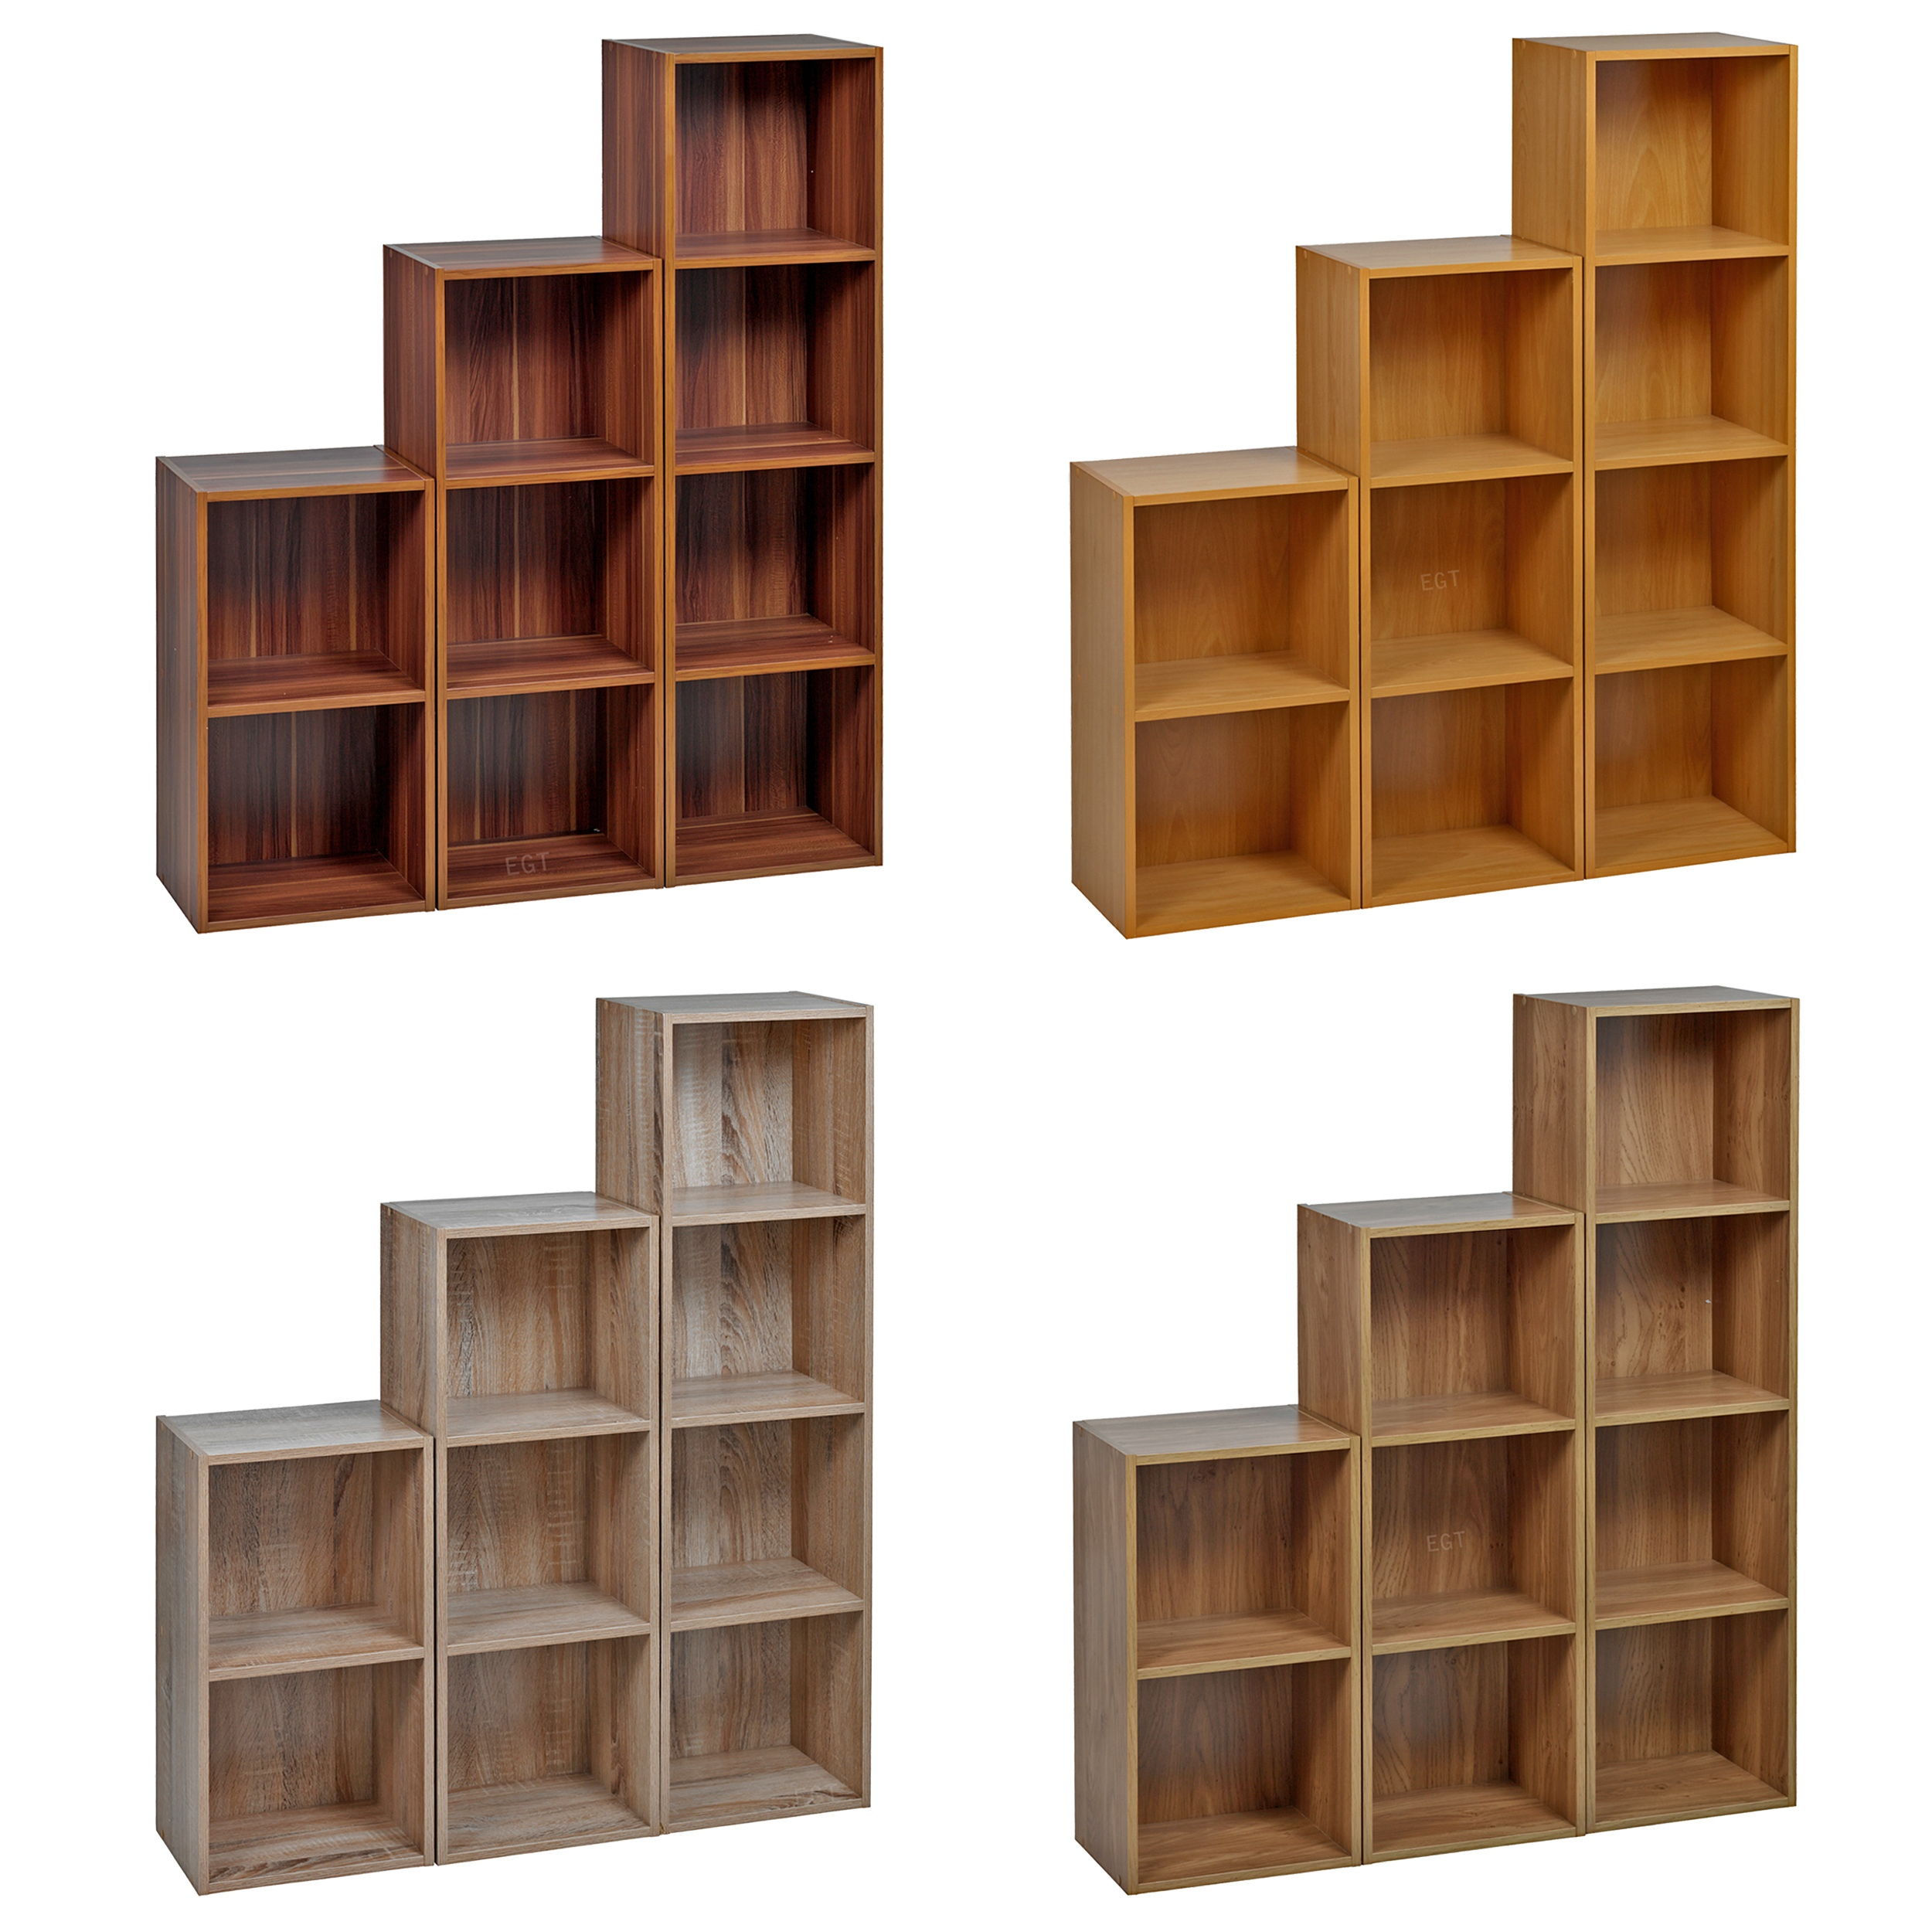 Tier Wooden Bookcase Shelving Display Storage Wood Shelf Shelves Unit